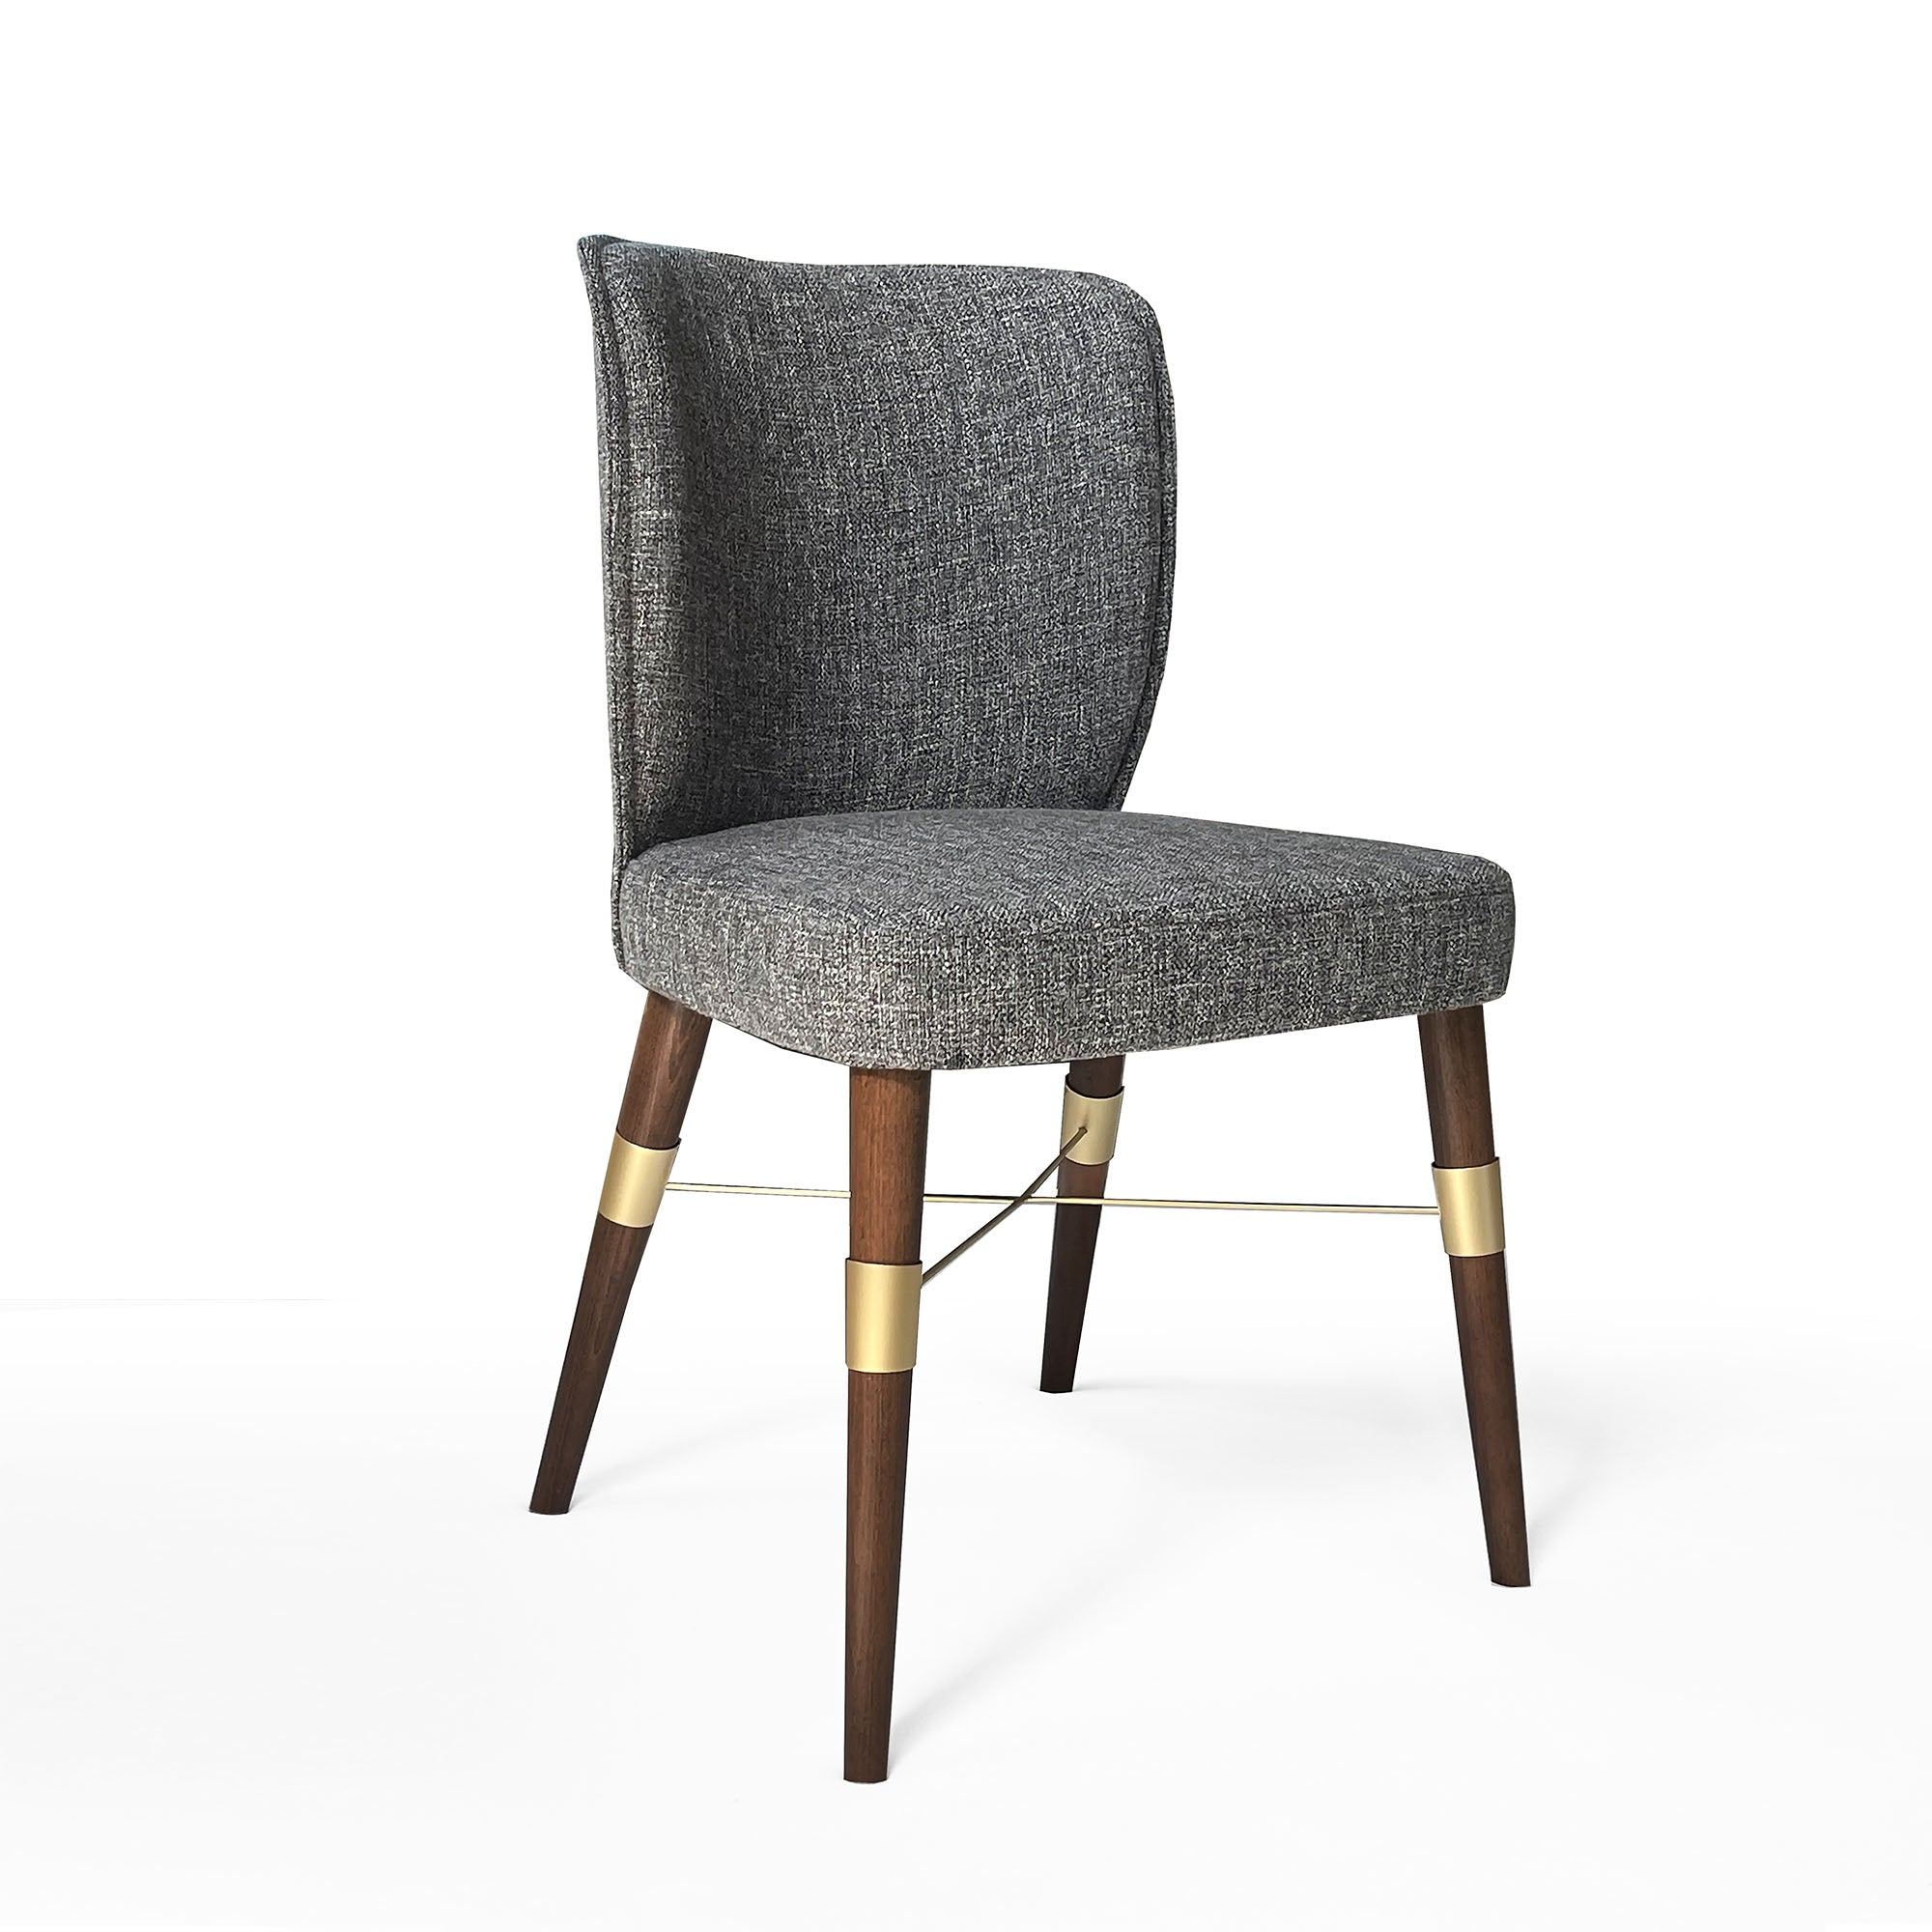 Pre-Order 40 days delivery Dali Chair Beige  Dali-G -  اطلب مسبقًا 60 يومًا توصيل كرسي دالي بلون البيج - Shop Online Furniture and Home Decor Store in Dubai, UAE at ebarza